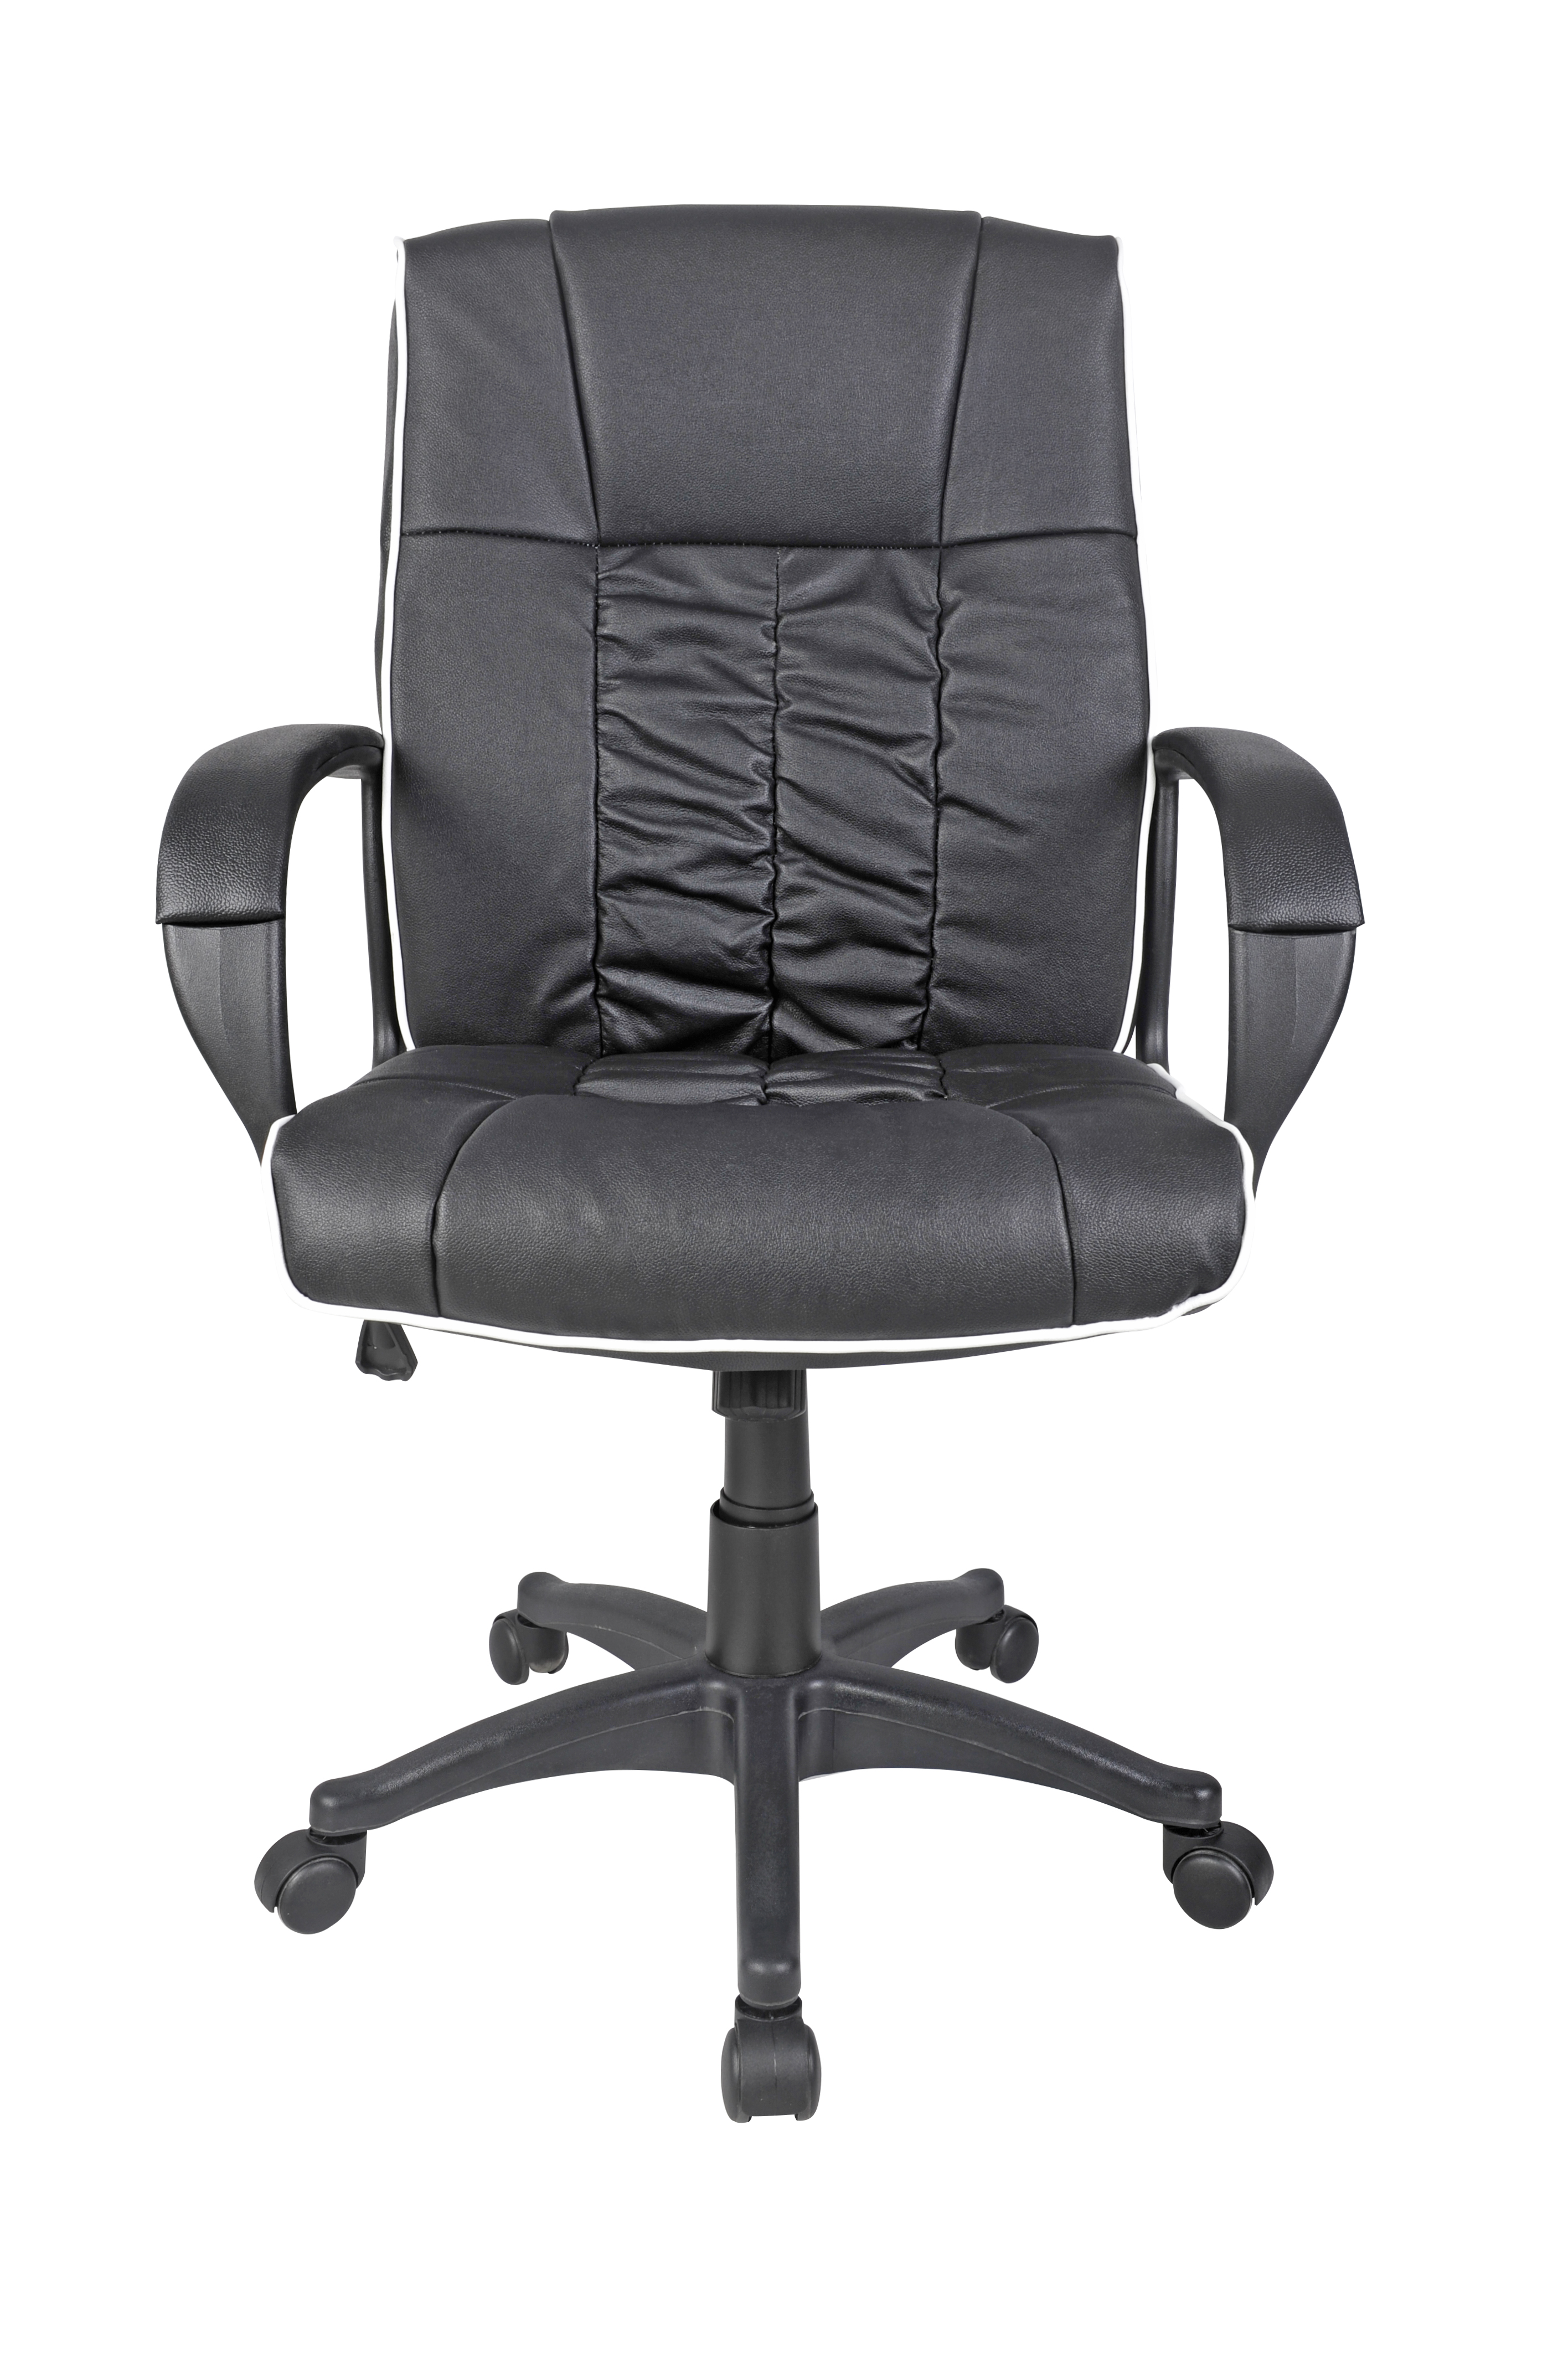 zone swivel chair big lots recliner chairs cow split leather high back office pc computer desk